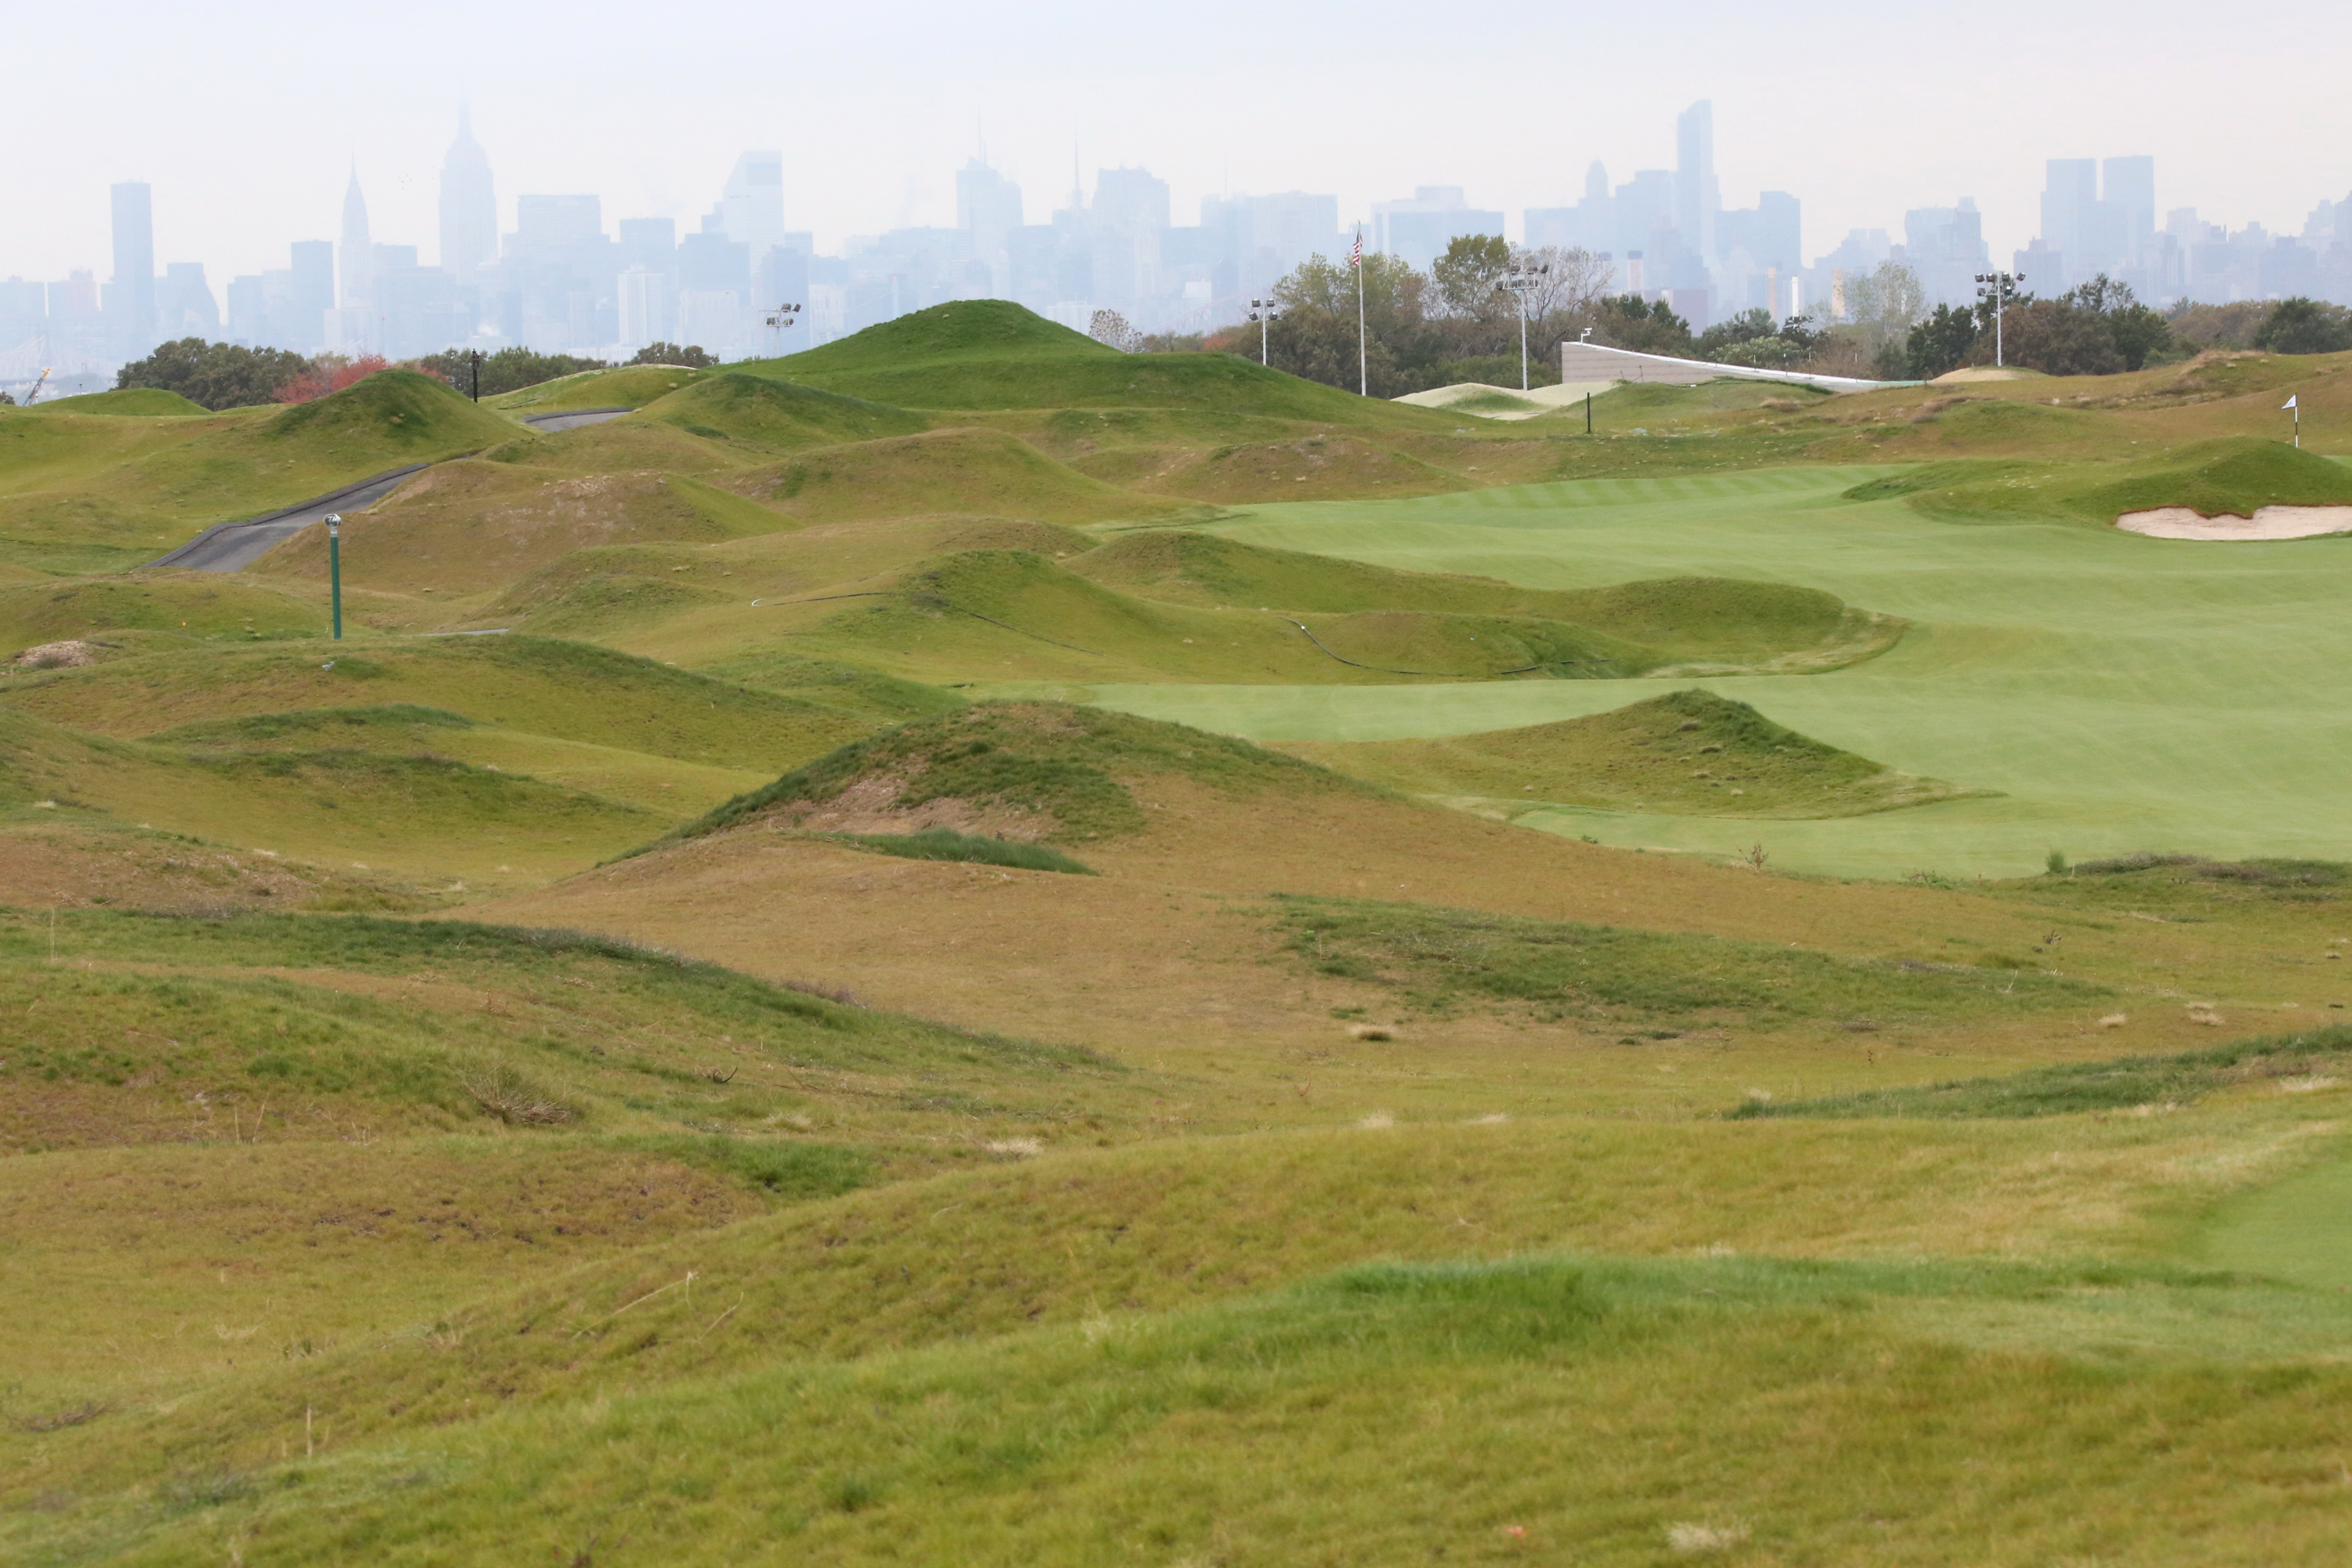 A view of the Trump Golf Links in The Bronx during its 2013 opening.